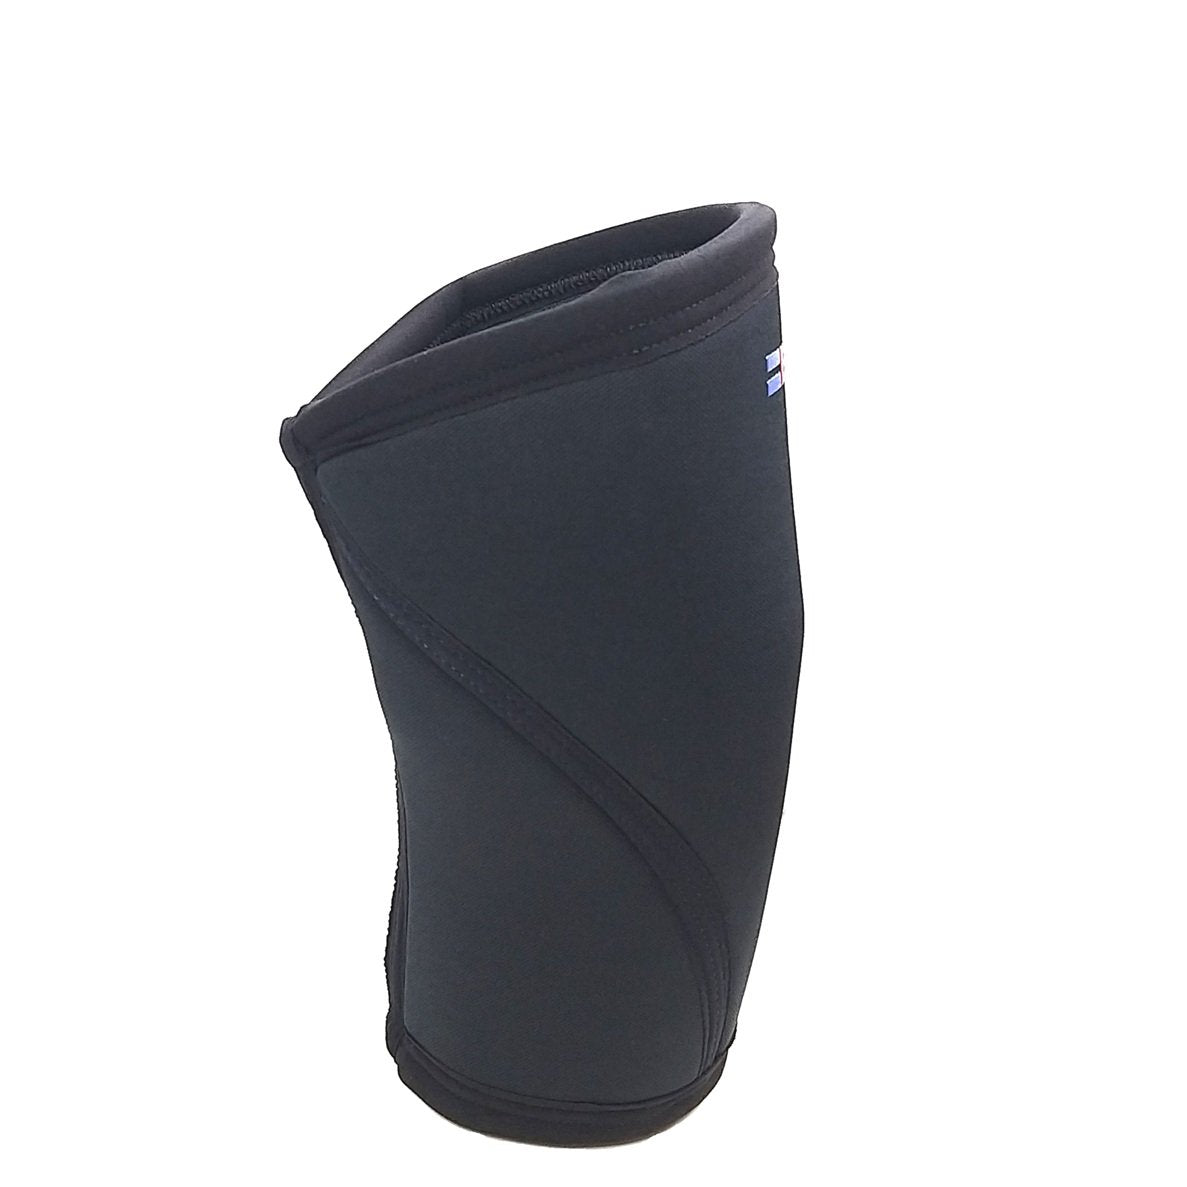 Knee Sleeve Weight Lifting Squats Gym Cross Fit